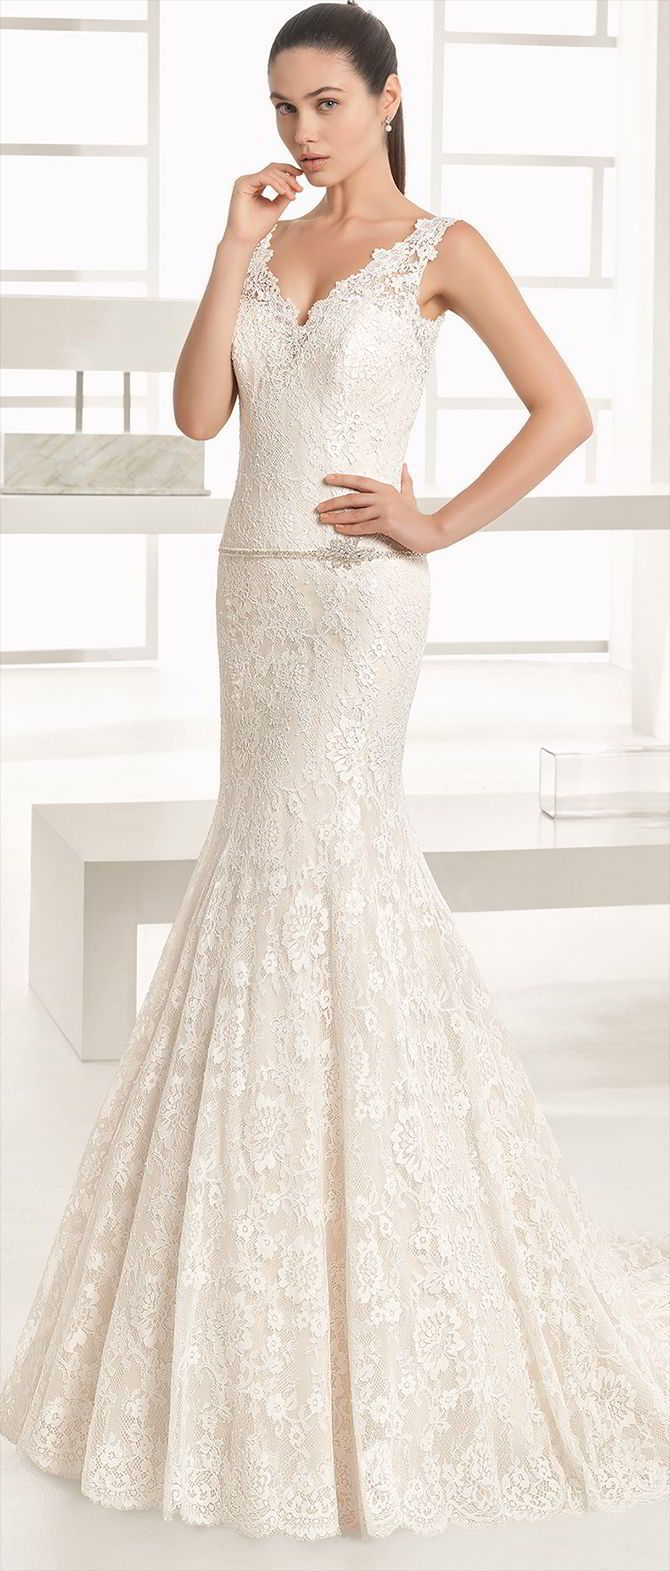 1000 images about Mermaid Wedding Dresses on Pinterest